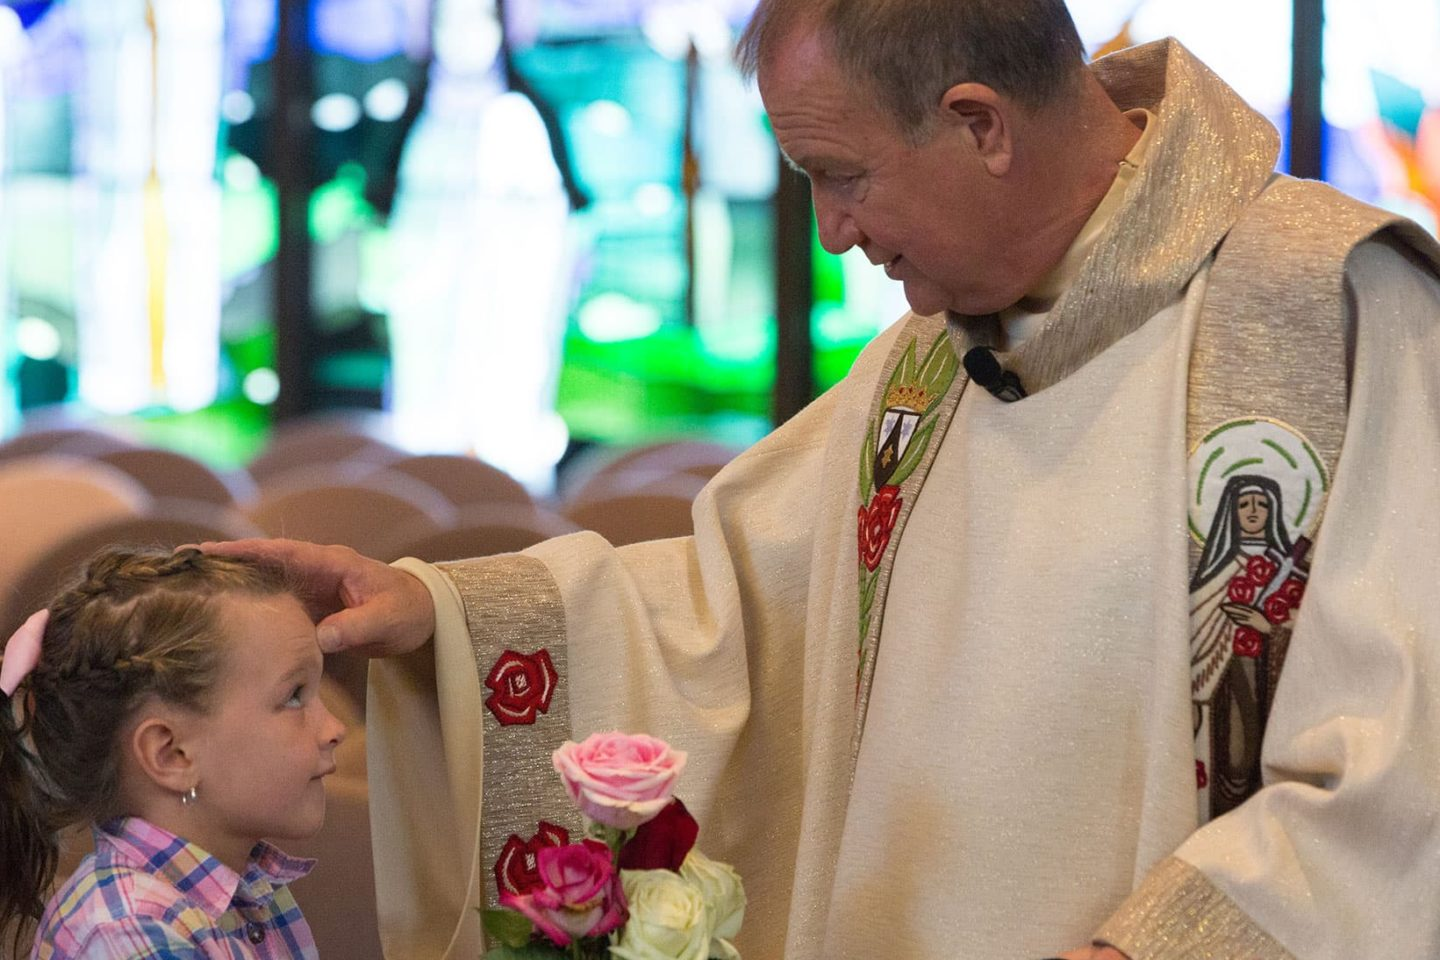 Fr. Bob Colaresi blesses young child at St. Therese Feast Day